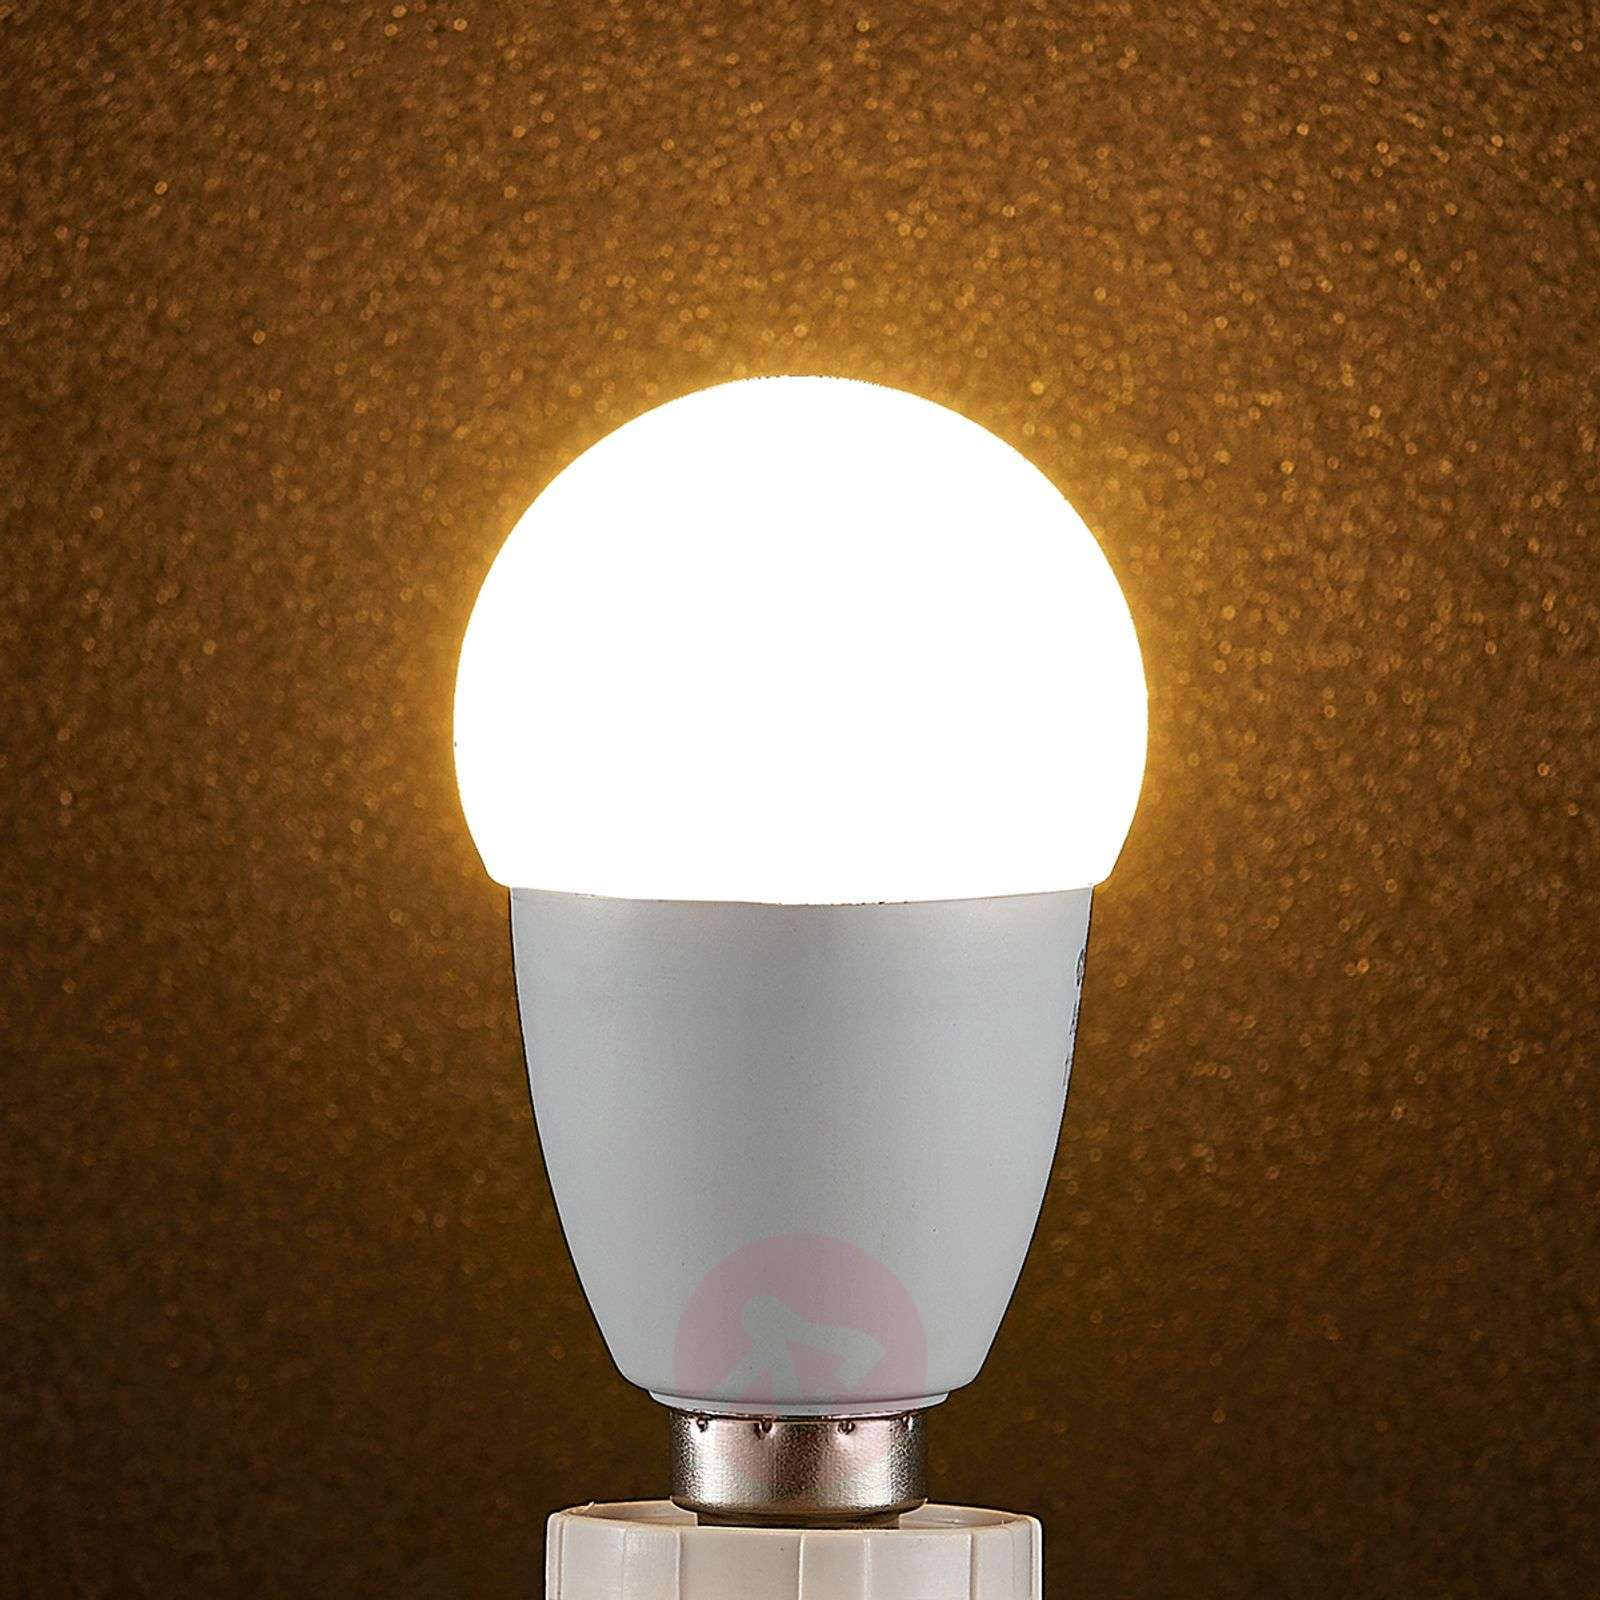 Lindby Smart lampadina LED WiFi E14 4,5 W, goccia-9971020-01